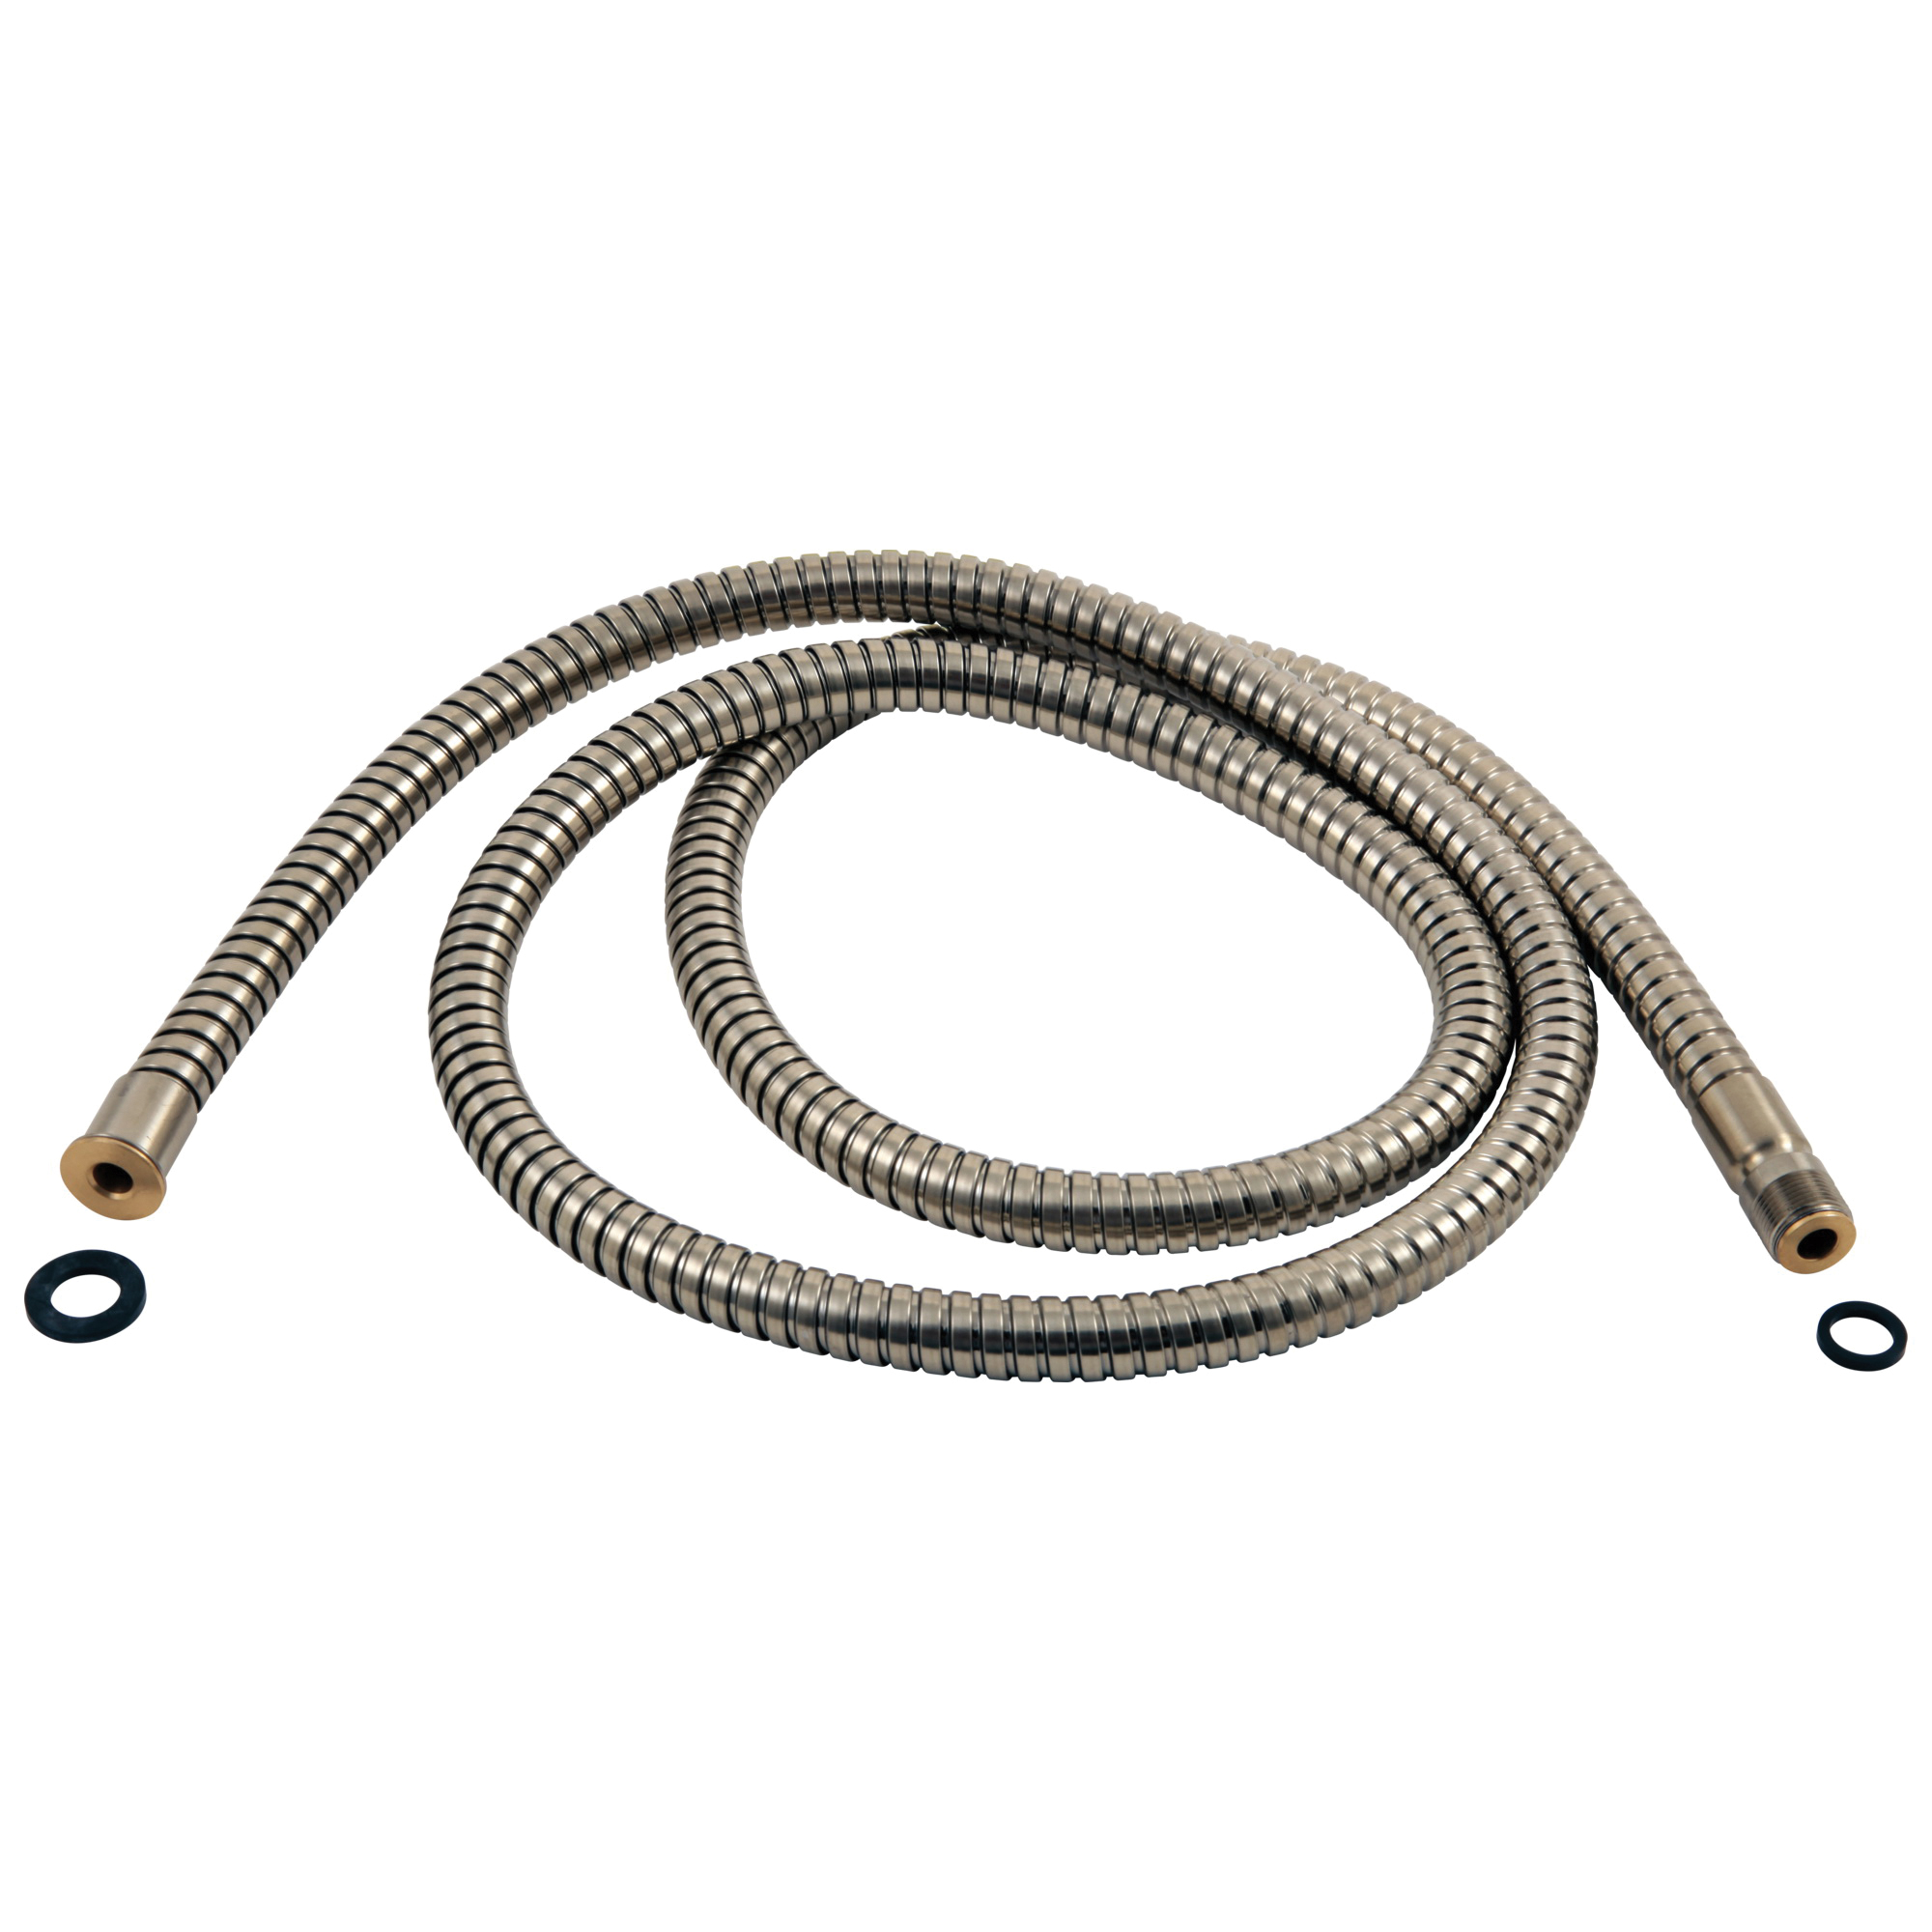 Brizo® RP40664BN Roman Tub Hose and Gasket, 59 in L, Import